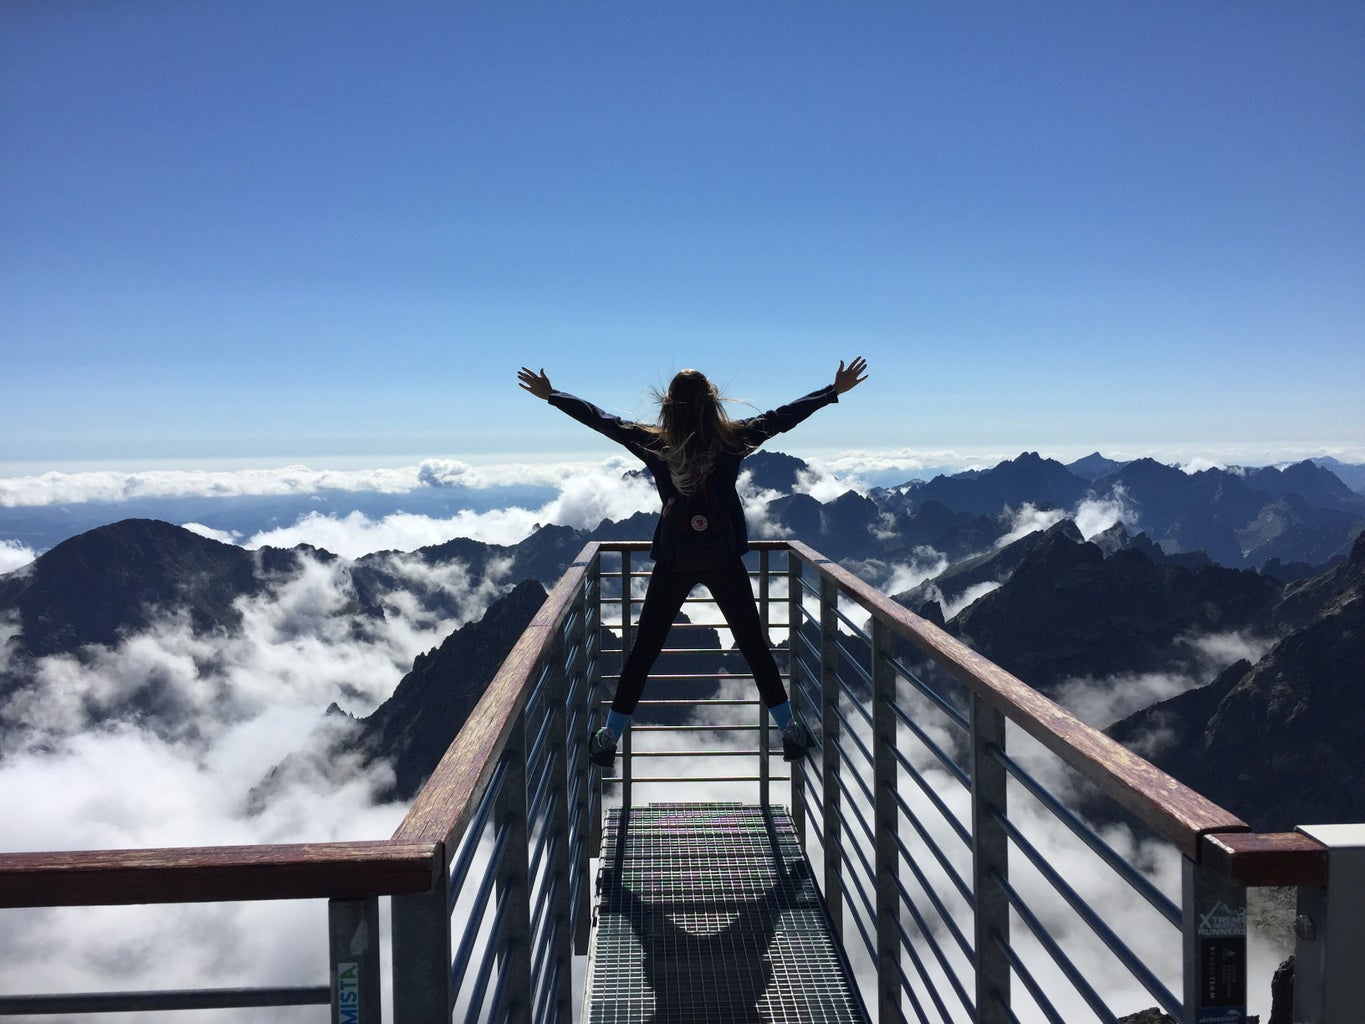 person standing wide toward mountains